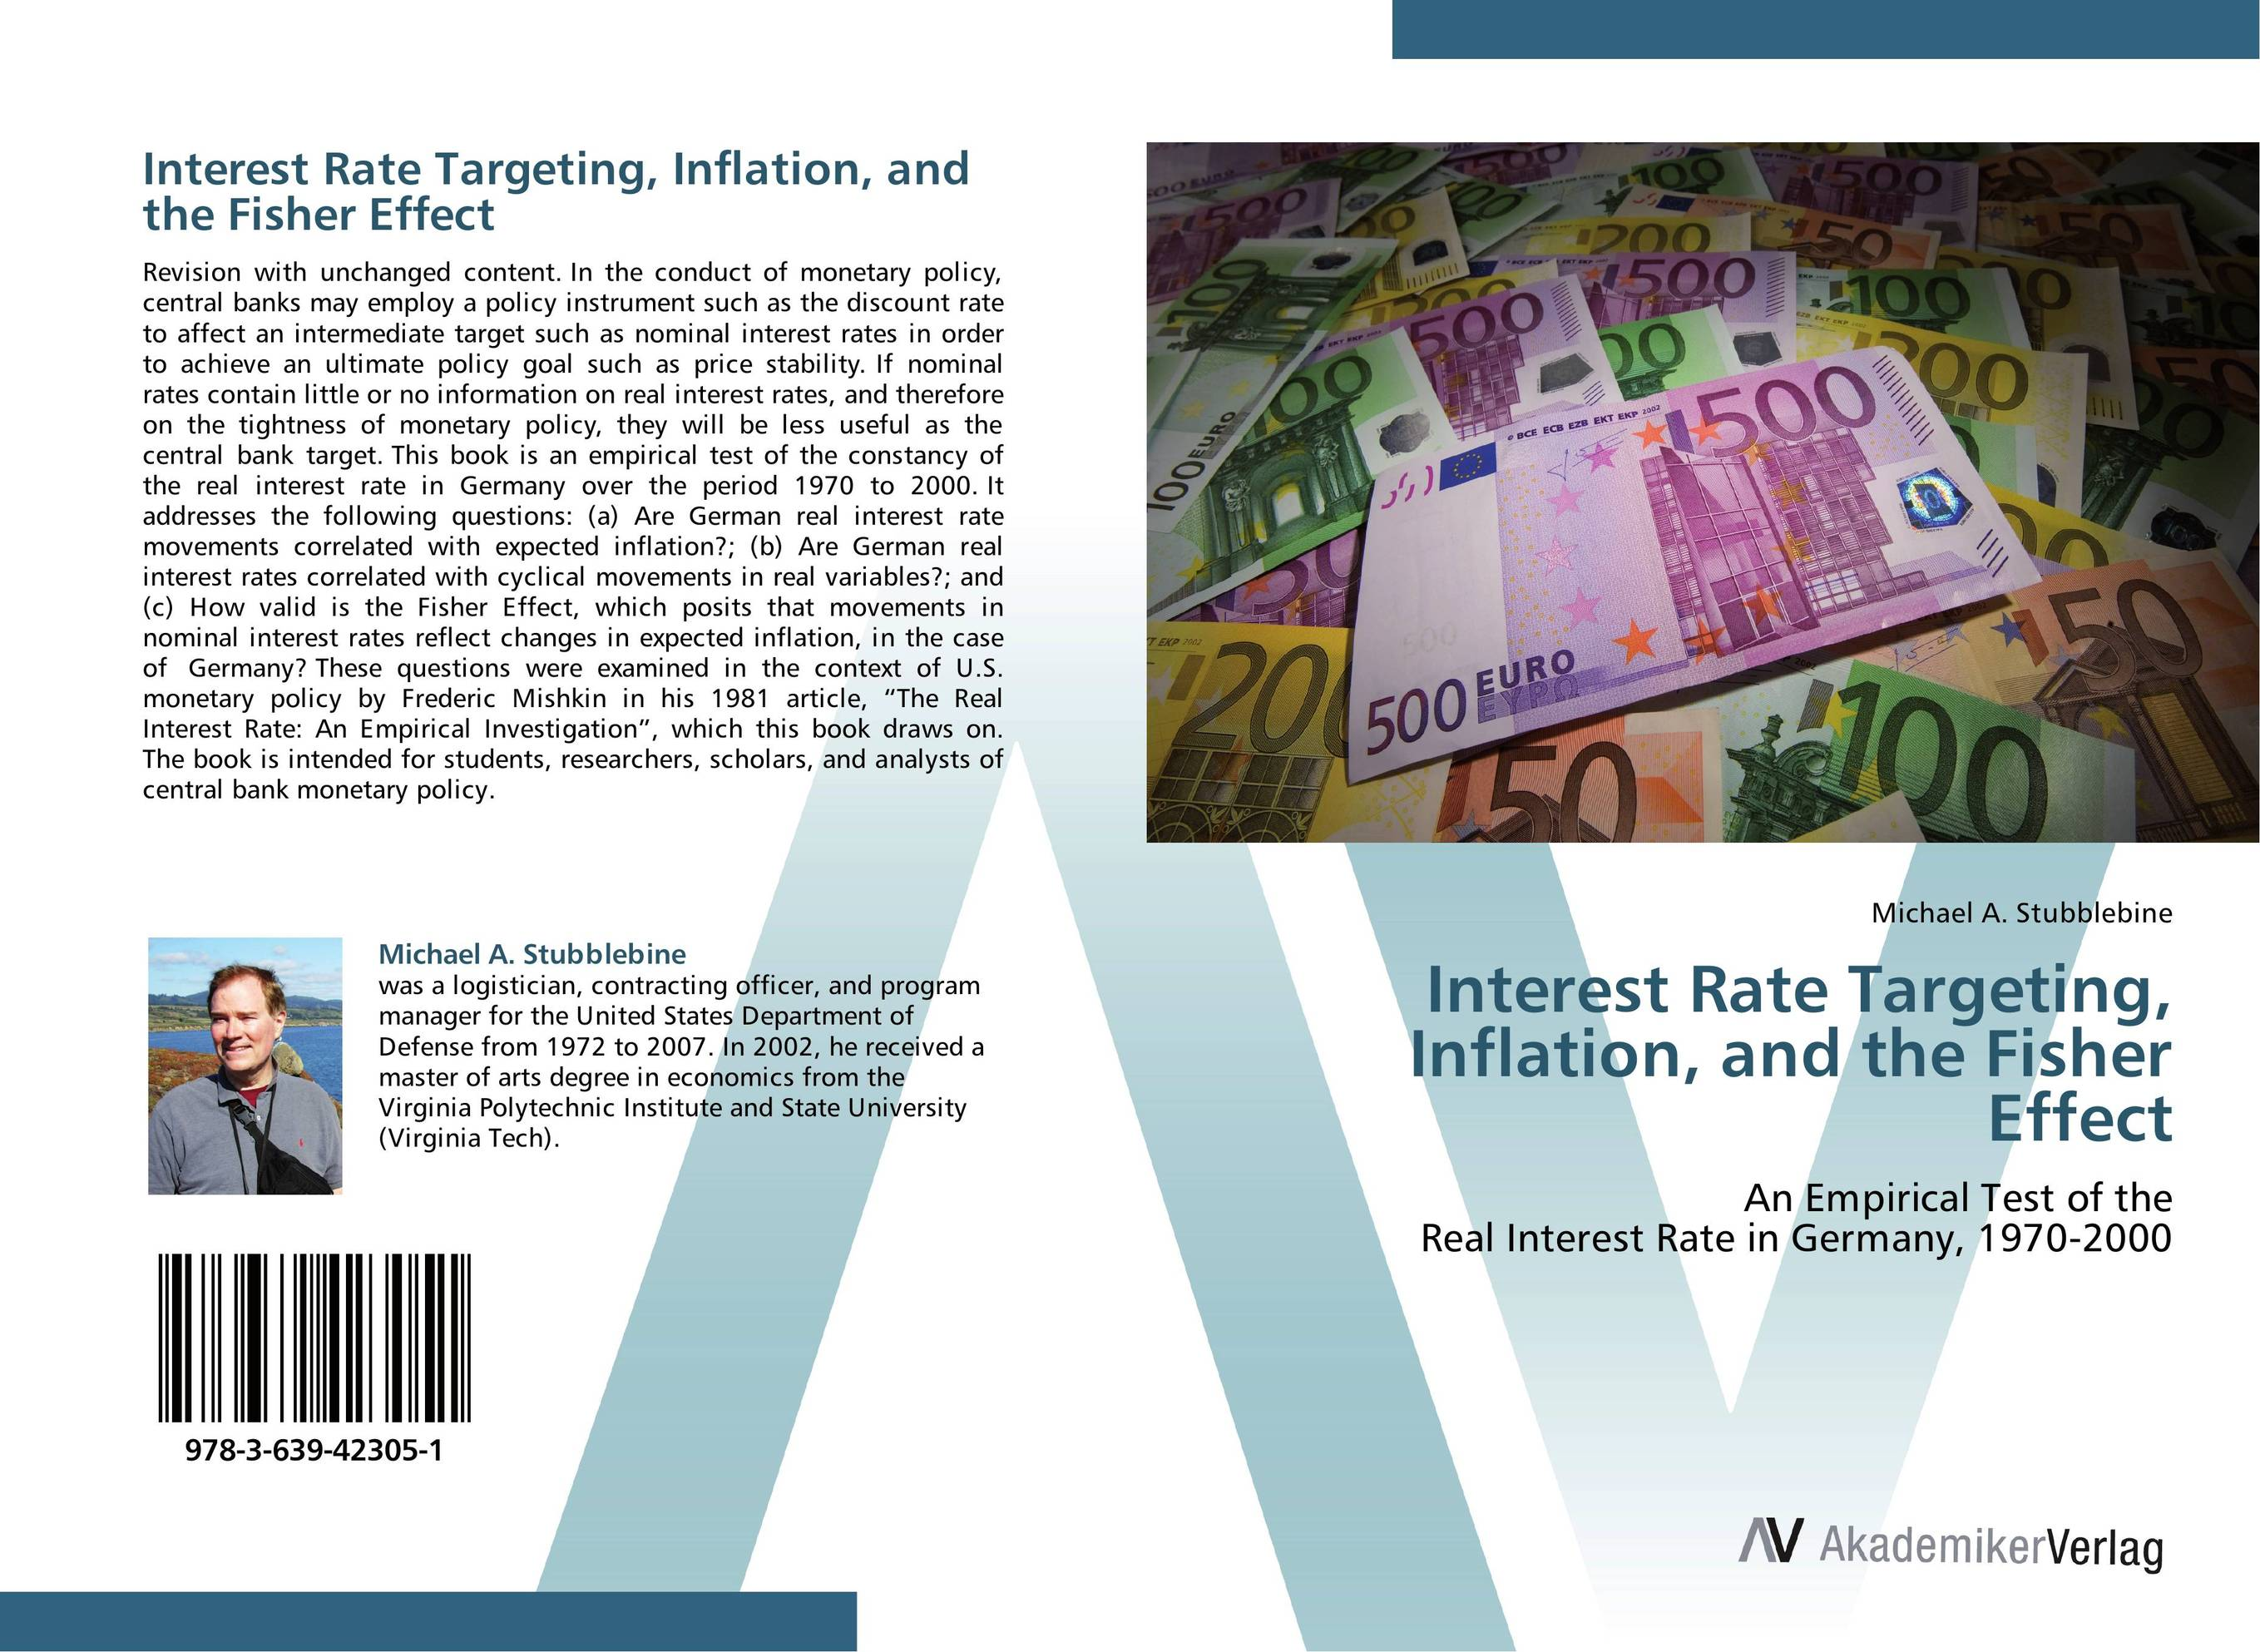 Interest Rate Targeting, Inflation, and the Fisher Effect arcade ndoricimpa inflation output growth and their uncertainties in south africa empirical evidence from an asymmetric multivariate garch m model